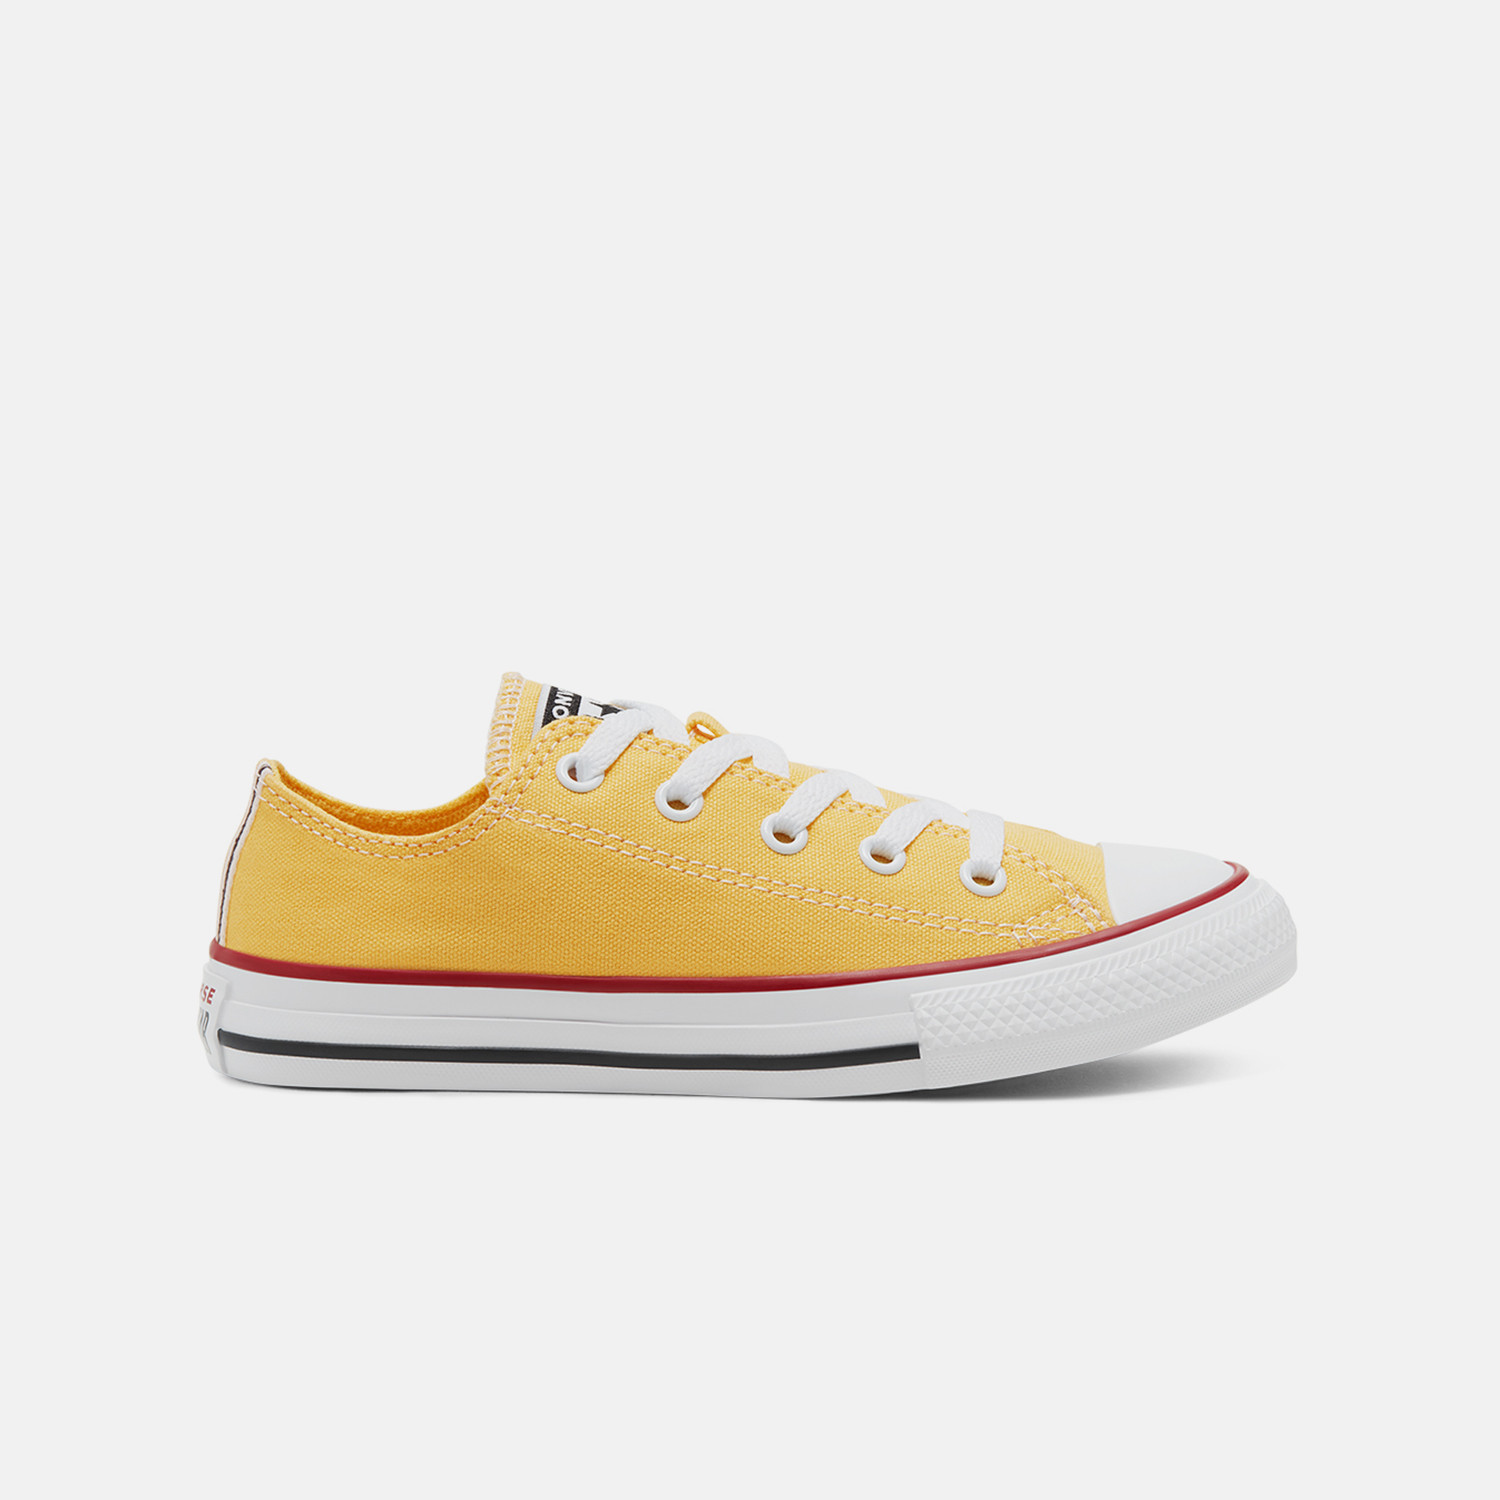 Converse Chuck Taylor All Star Low Top Unisex Youth Shoes (9000049682_44797)